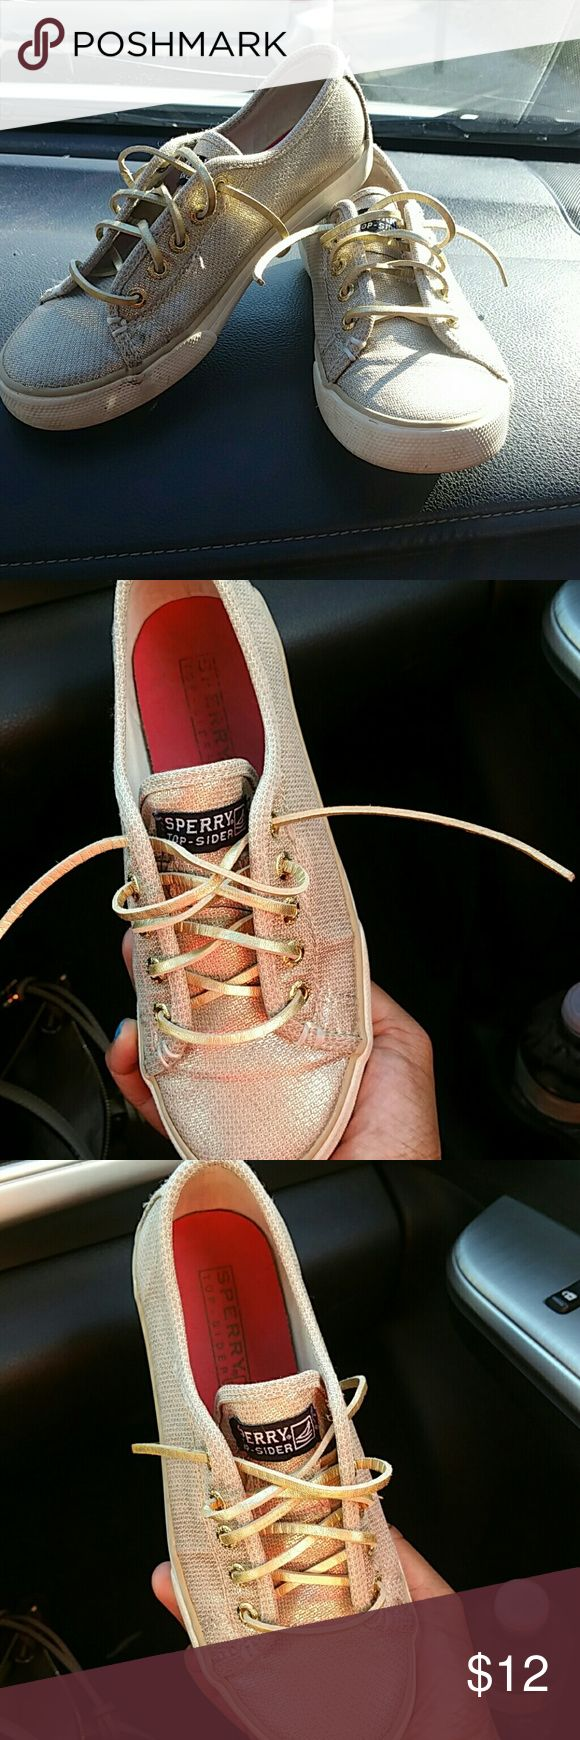 Sperry gold girl shoes size 1 Size 1 Sperry shoes. With gold leather laces. Sperry Top-Sider Shoes Sneakers